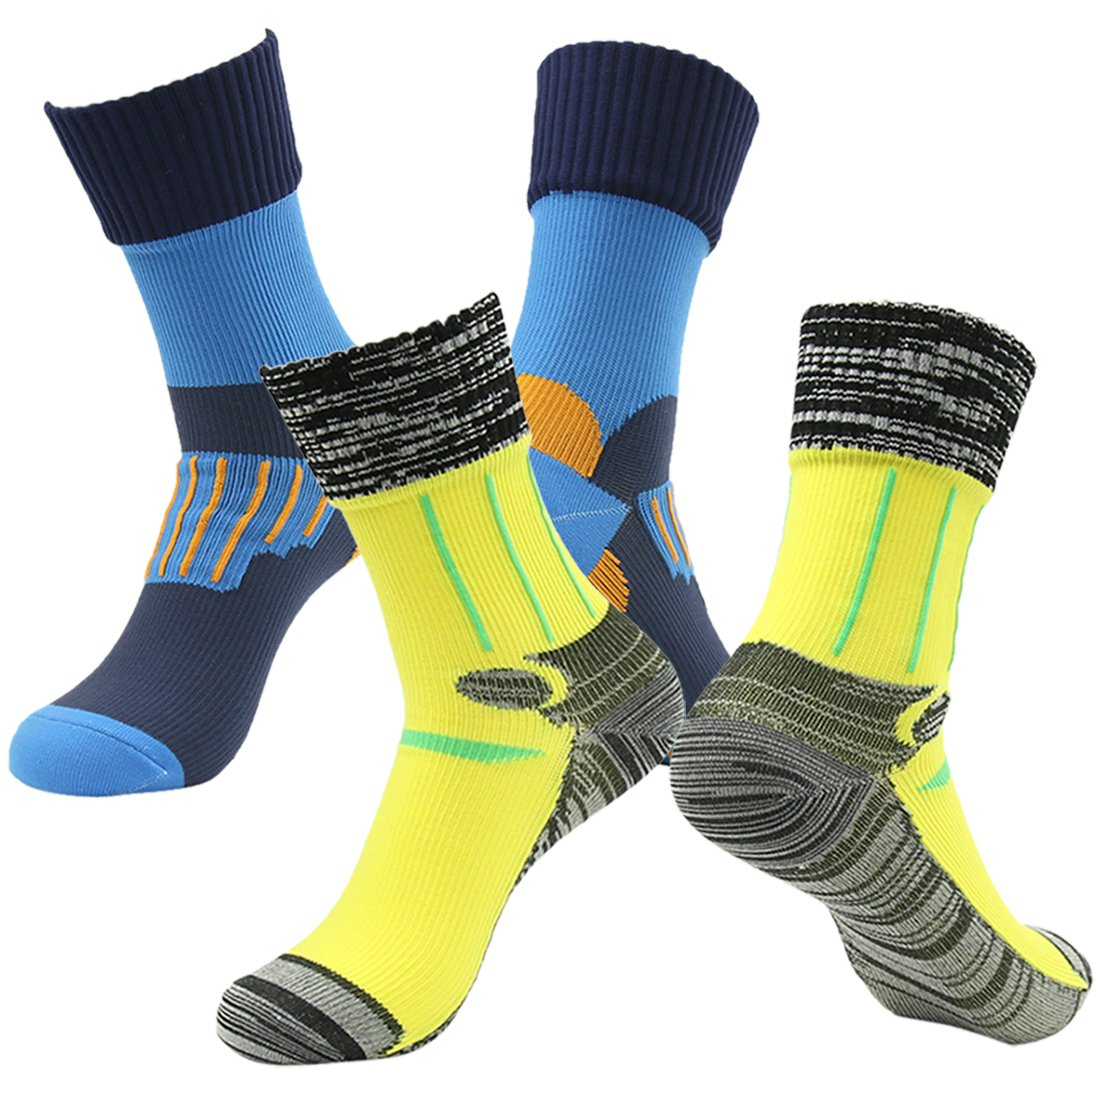 RANDY SUN Outdoors Waterproof Socks, Men's 2 Pairs Crosspoint Breathable Membrance Best Socks Blue&Yellow Size L by RANDY SUN